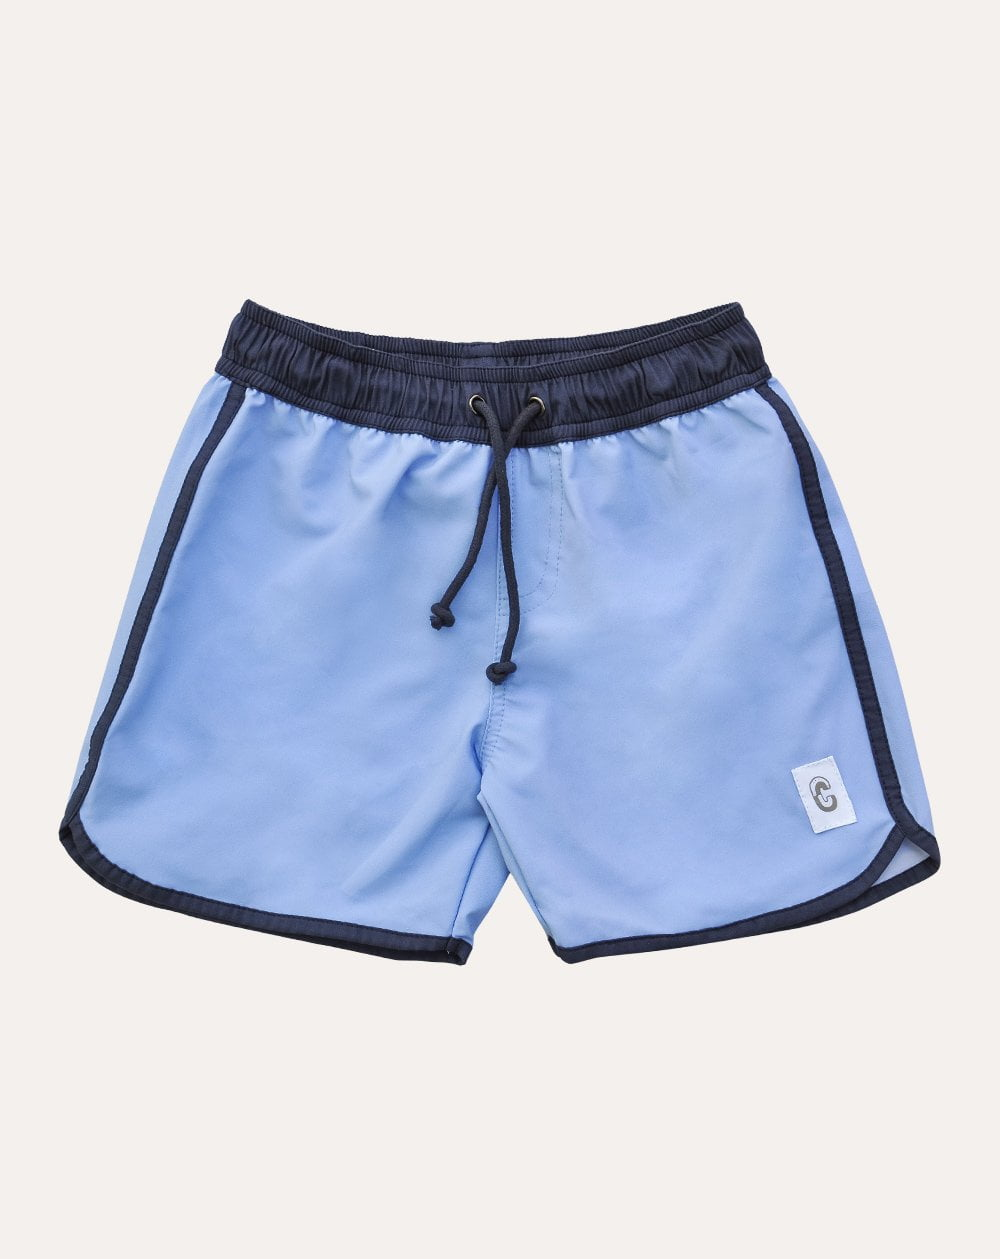 Periwinkle Quick Dry Beach Shorts